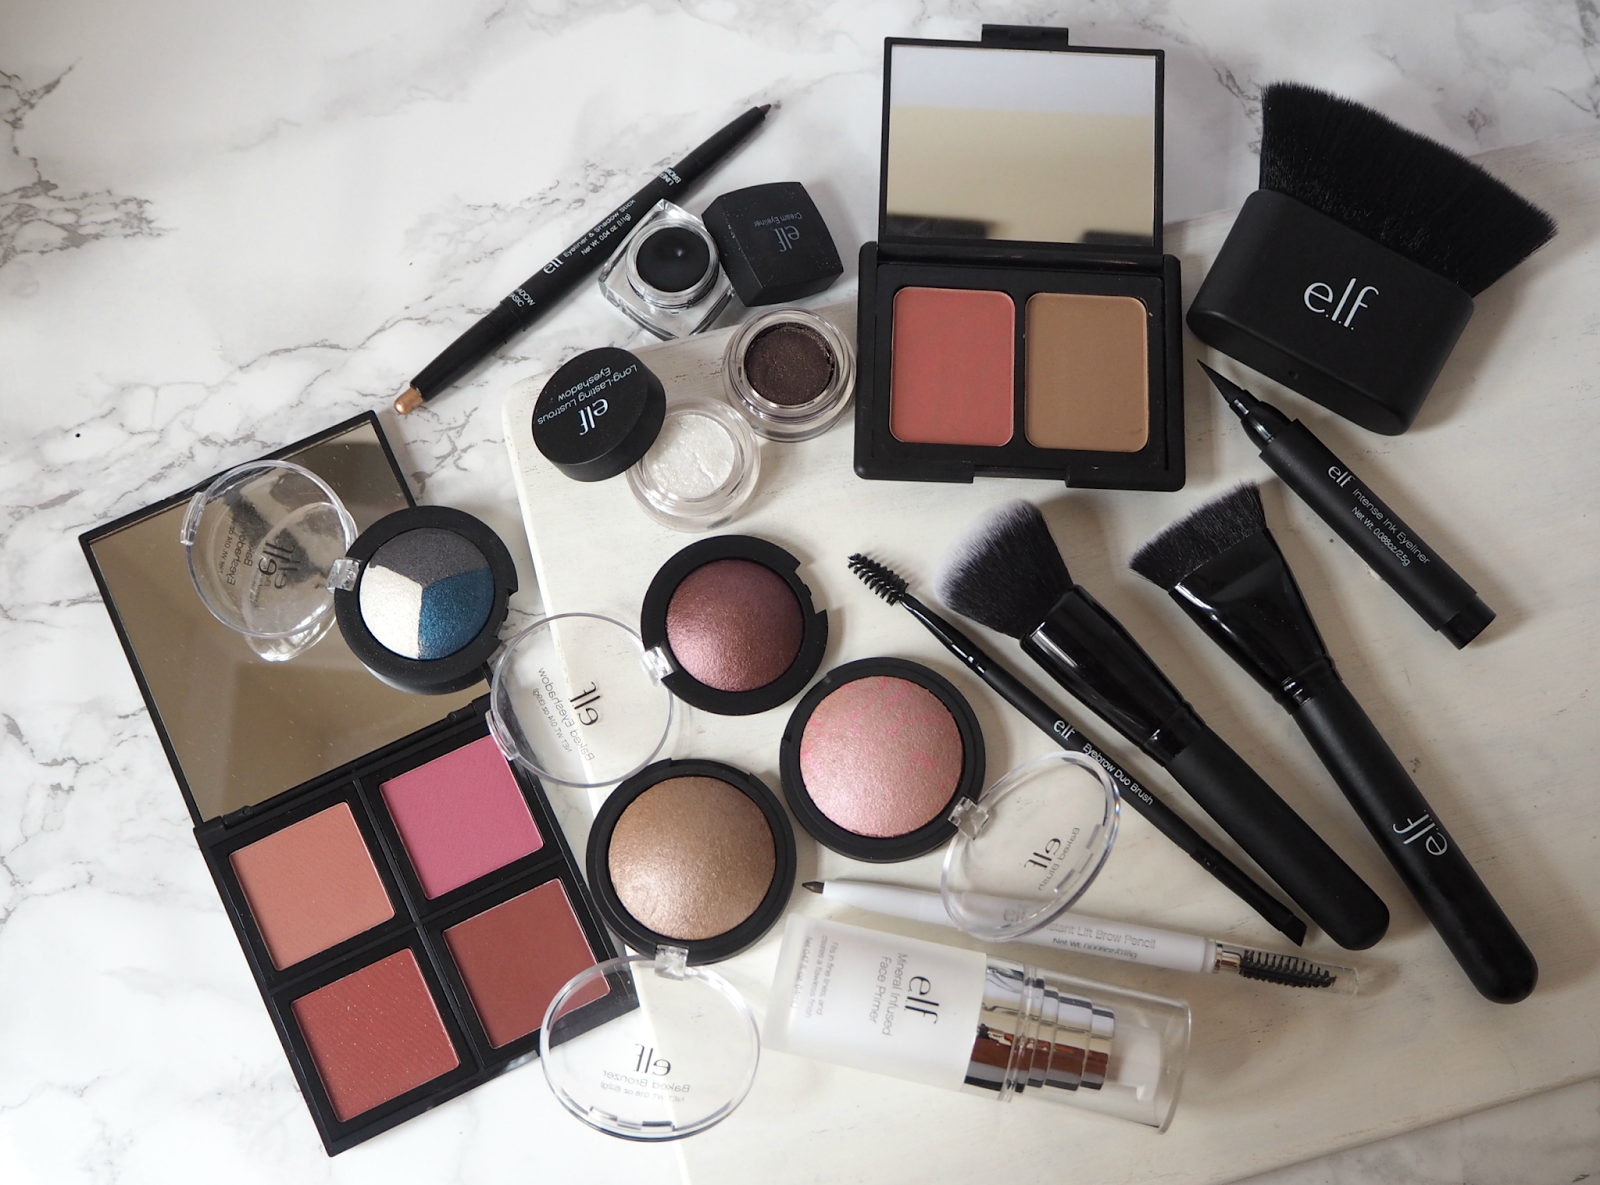 THE ORIGINAL BUDGET BEAUTY BRAND IS BACK IN THE UK MY TOP